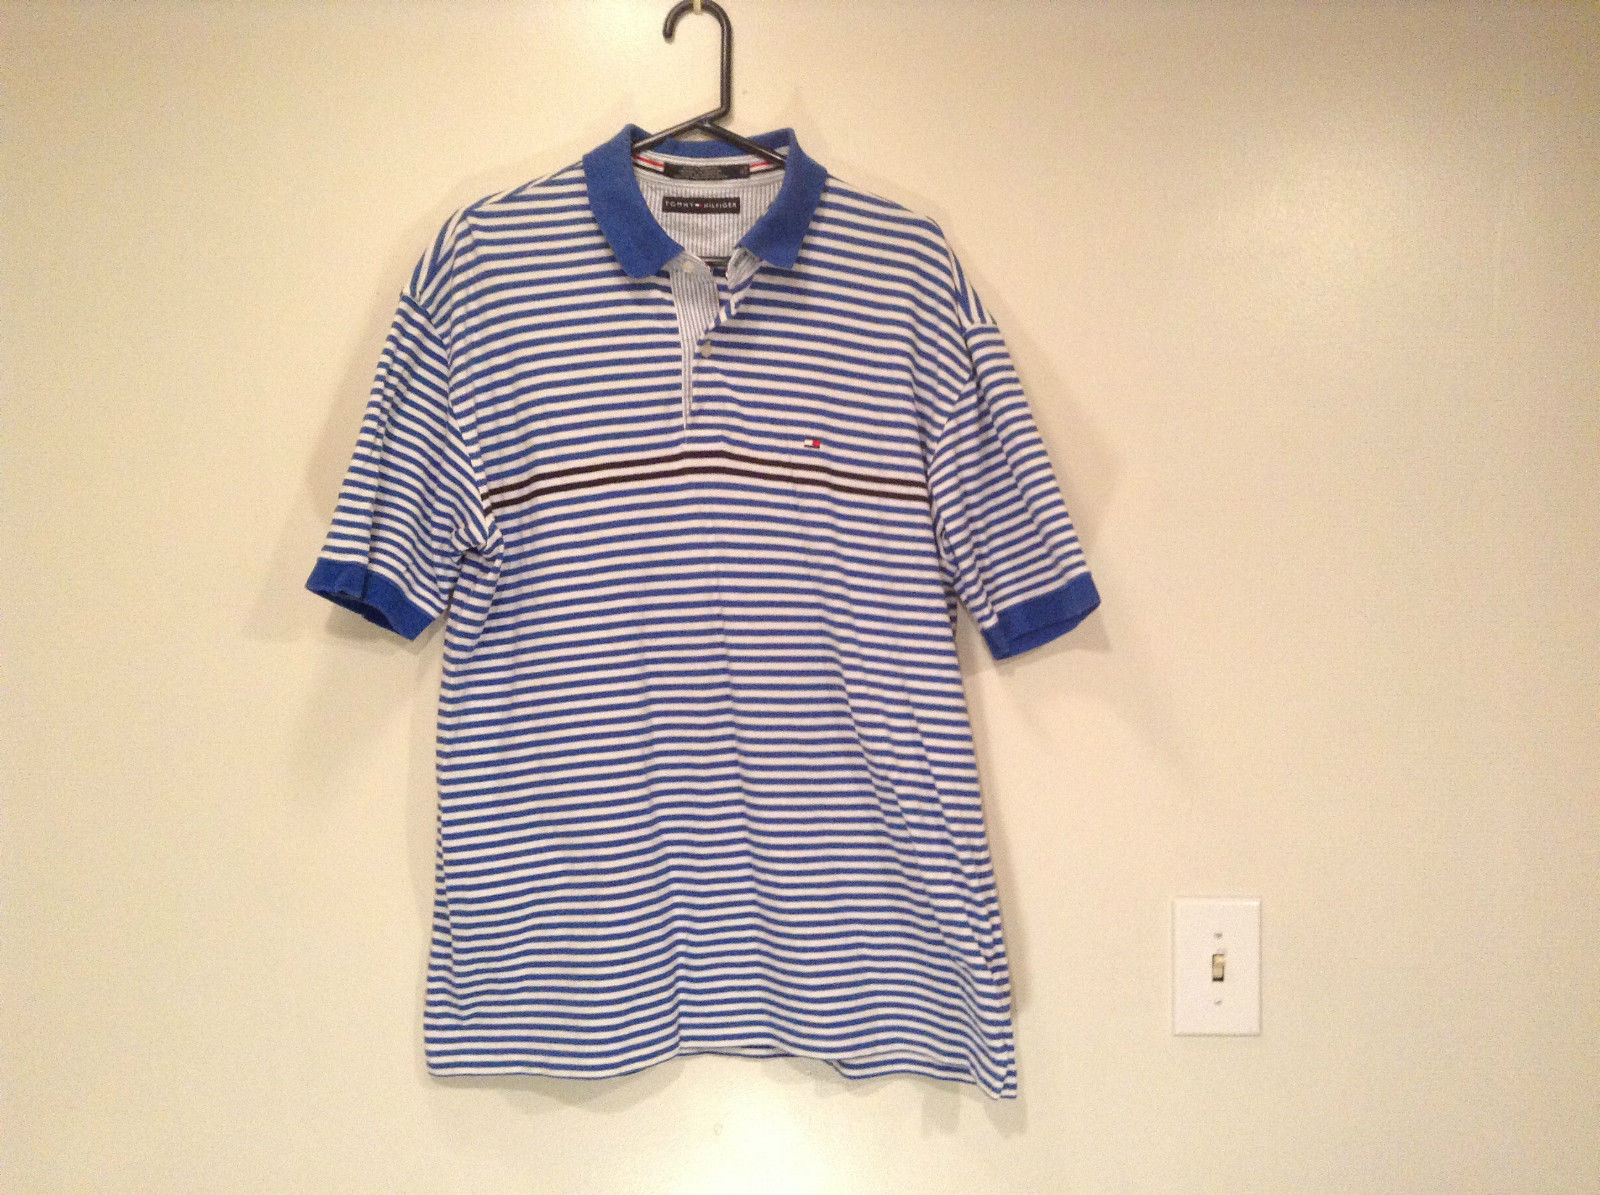 White and Blue Stripes Short Sleeve Tommy Hilfiger Polo Shirt Size XL